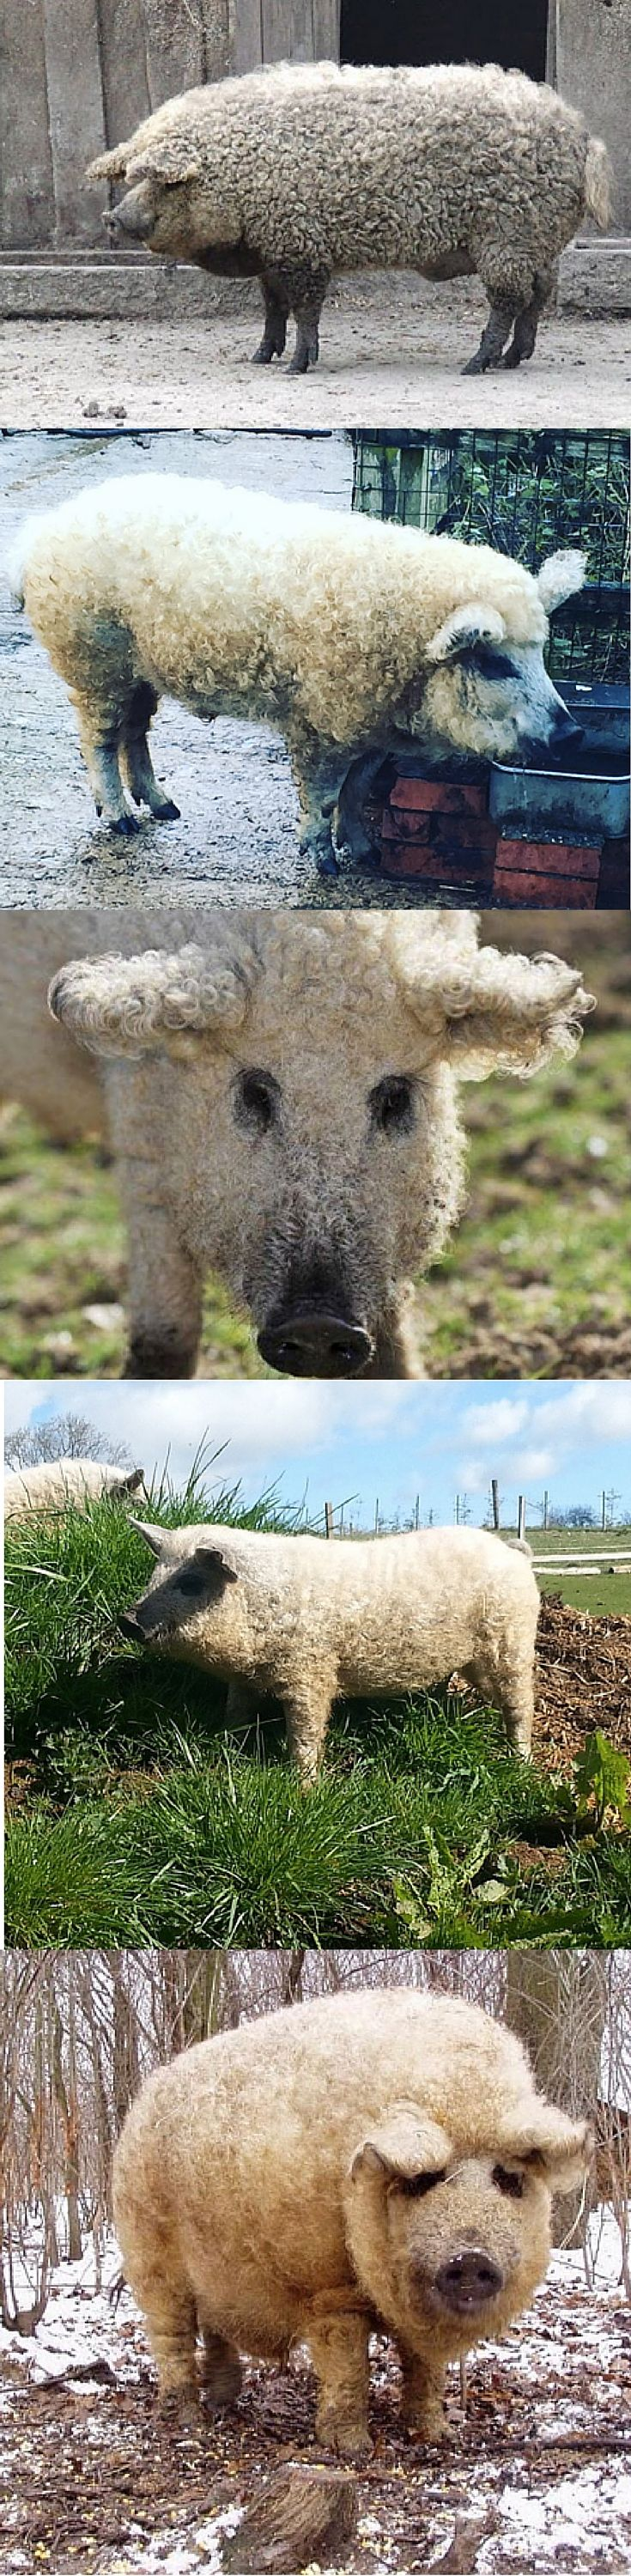 "Fuzzy pigs! These are called Mangalica pigs, aka ""sheep pigs"" because of their fuzzy, curly coats."